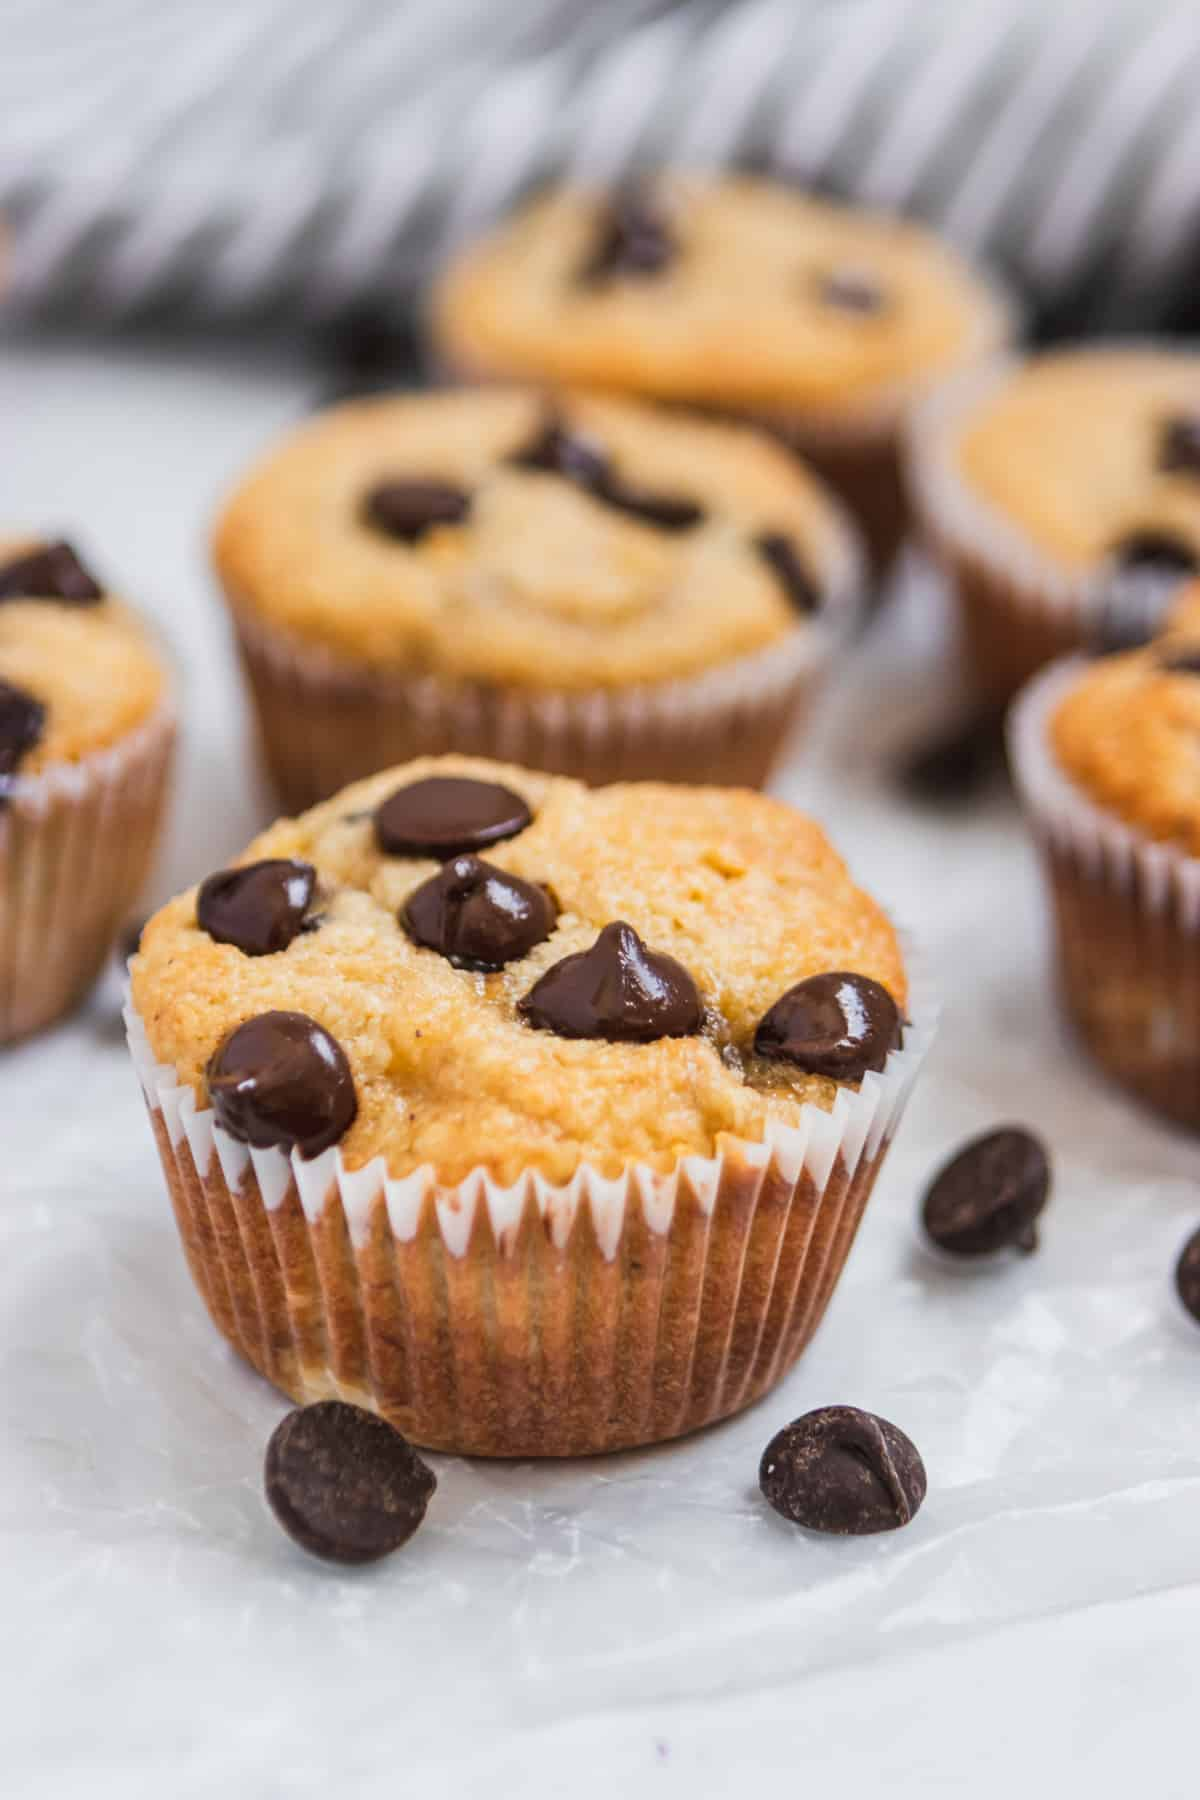 Banana muffins with chocolate chips on wax paper.